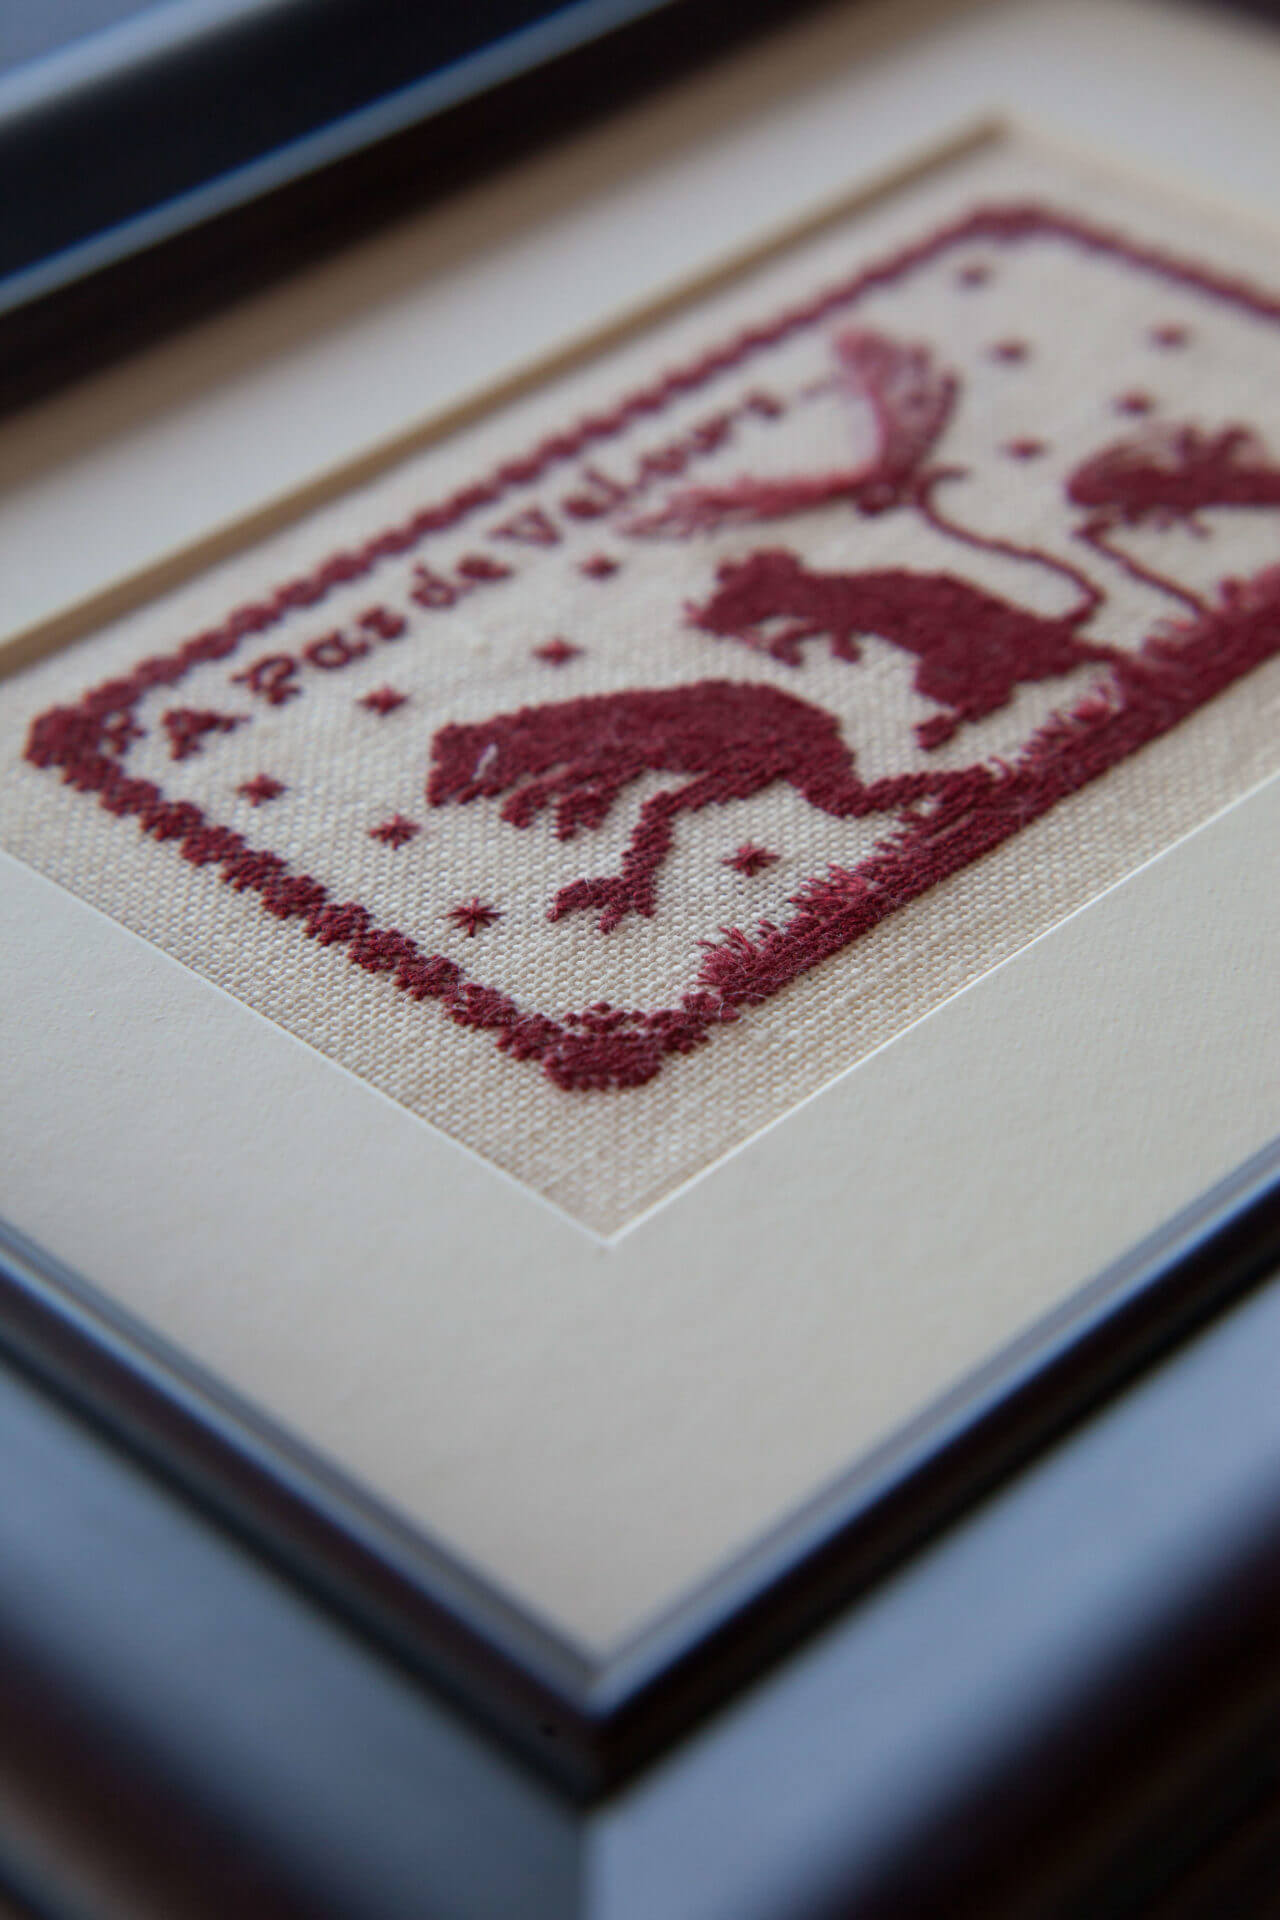 Needlework and Fabric Art Framing - The Framing Workshop